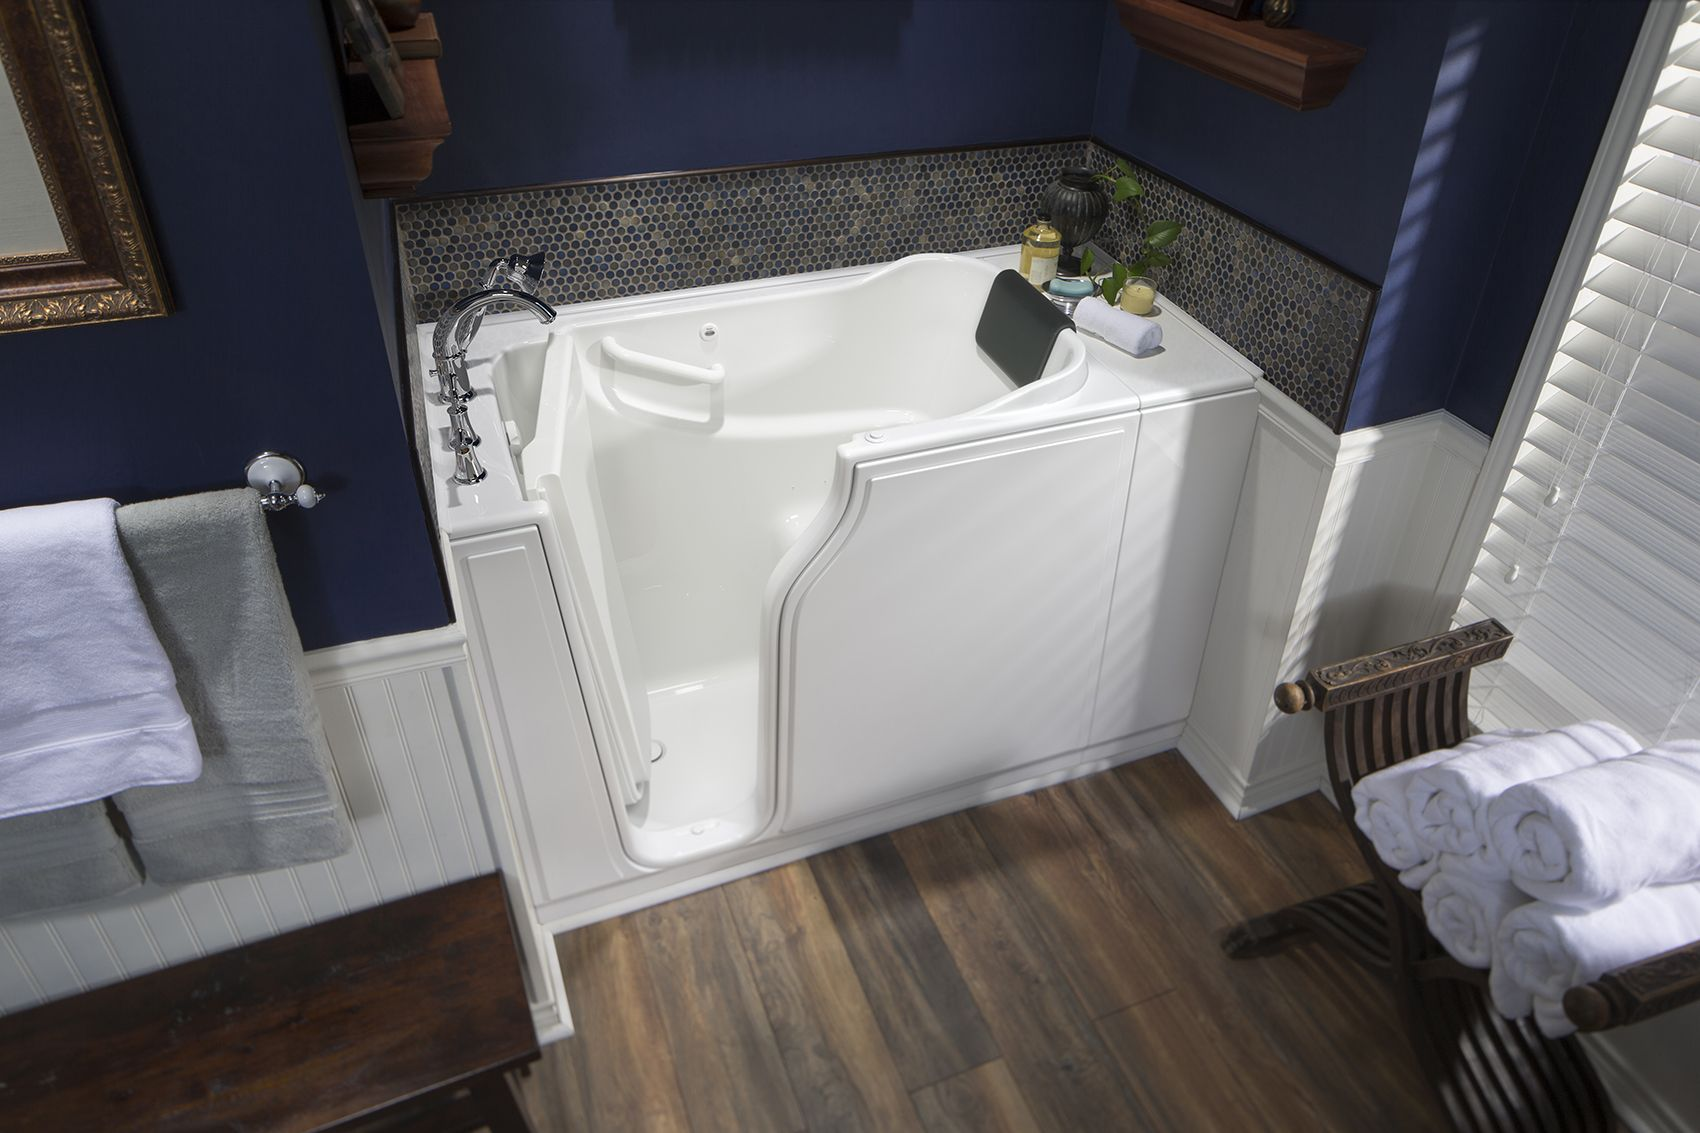 Broaden Your Bathroom With This Safety Tubs 52 X 30 Walk In Tub Perfect For Small Spaces This Tub Includes A Tub Walk In Tubs Small Bath Small Bathroom